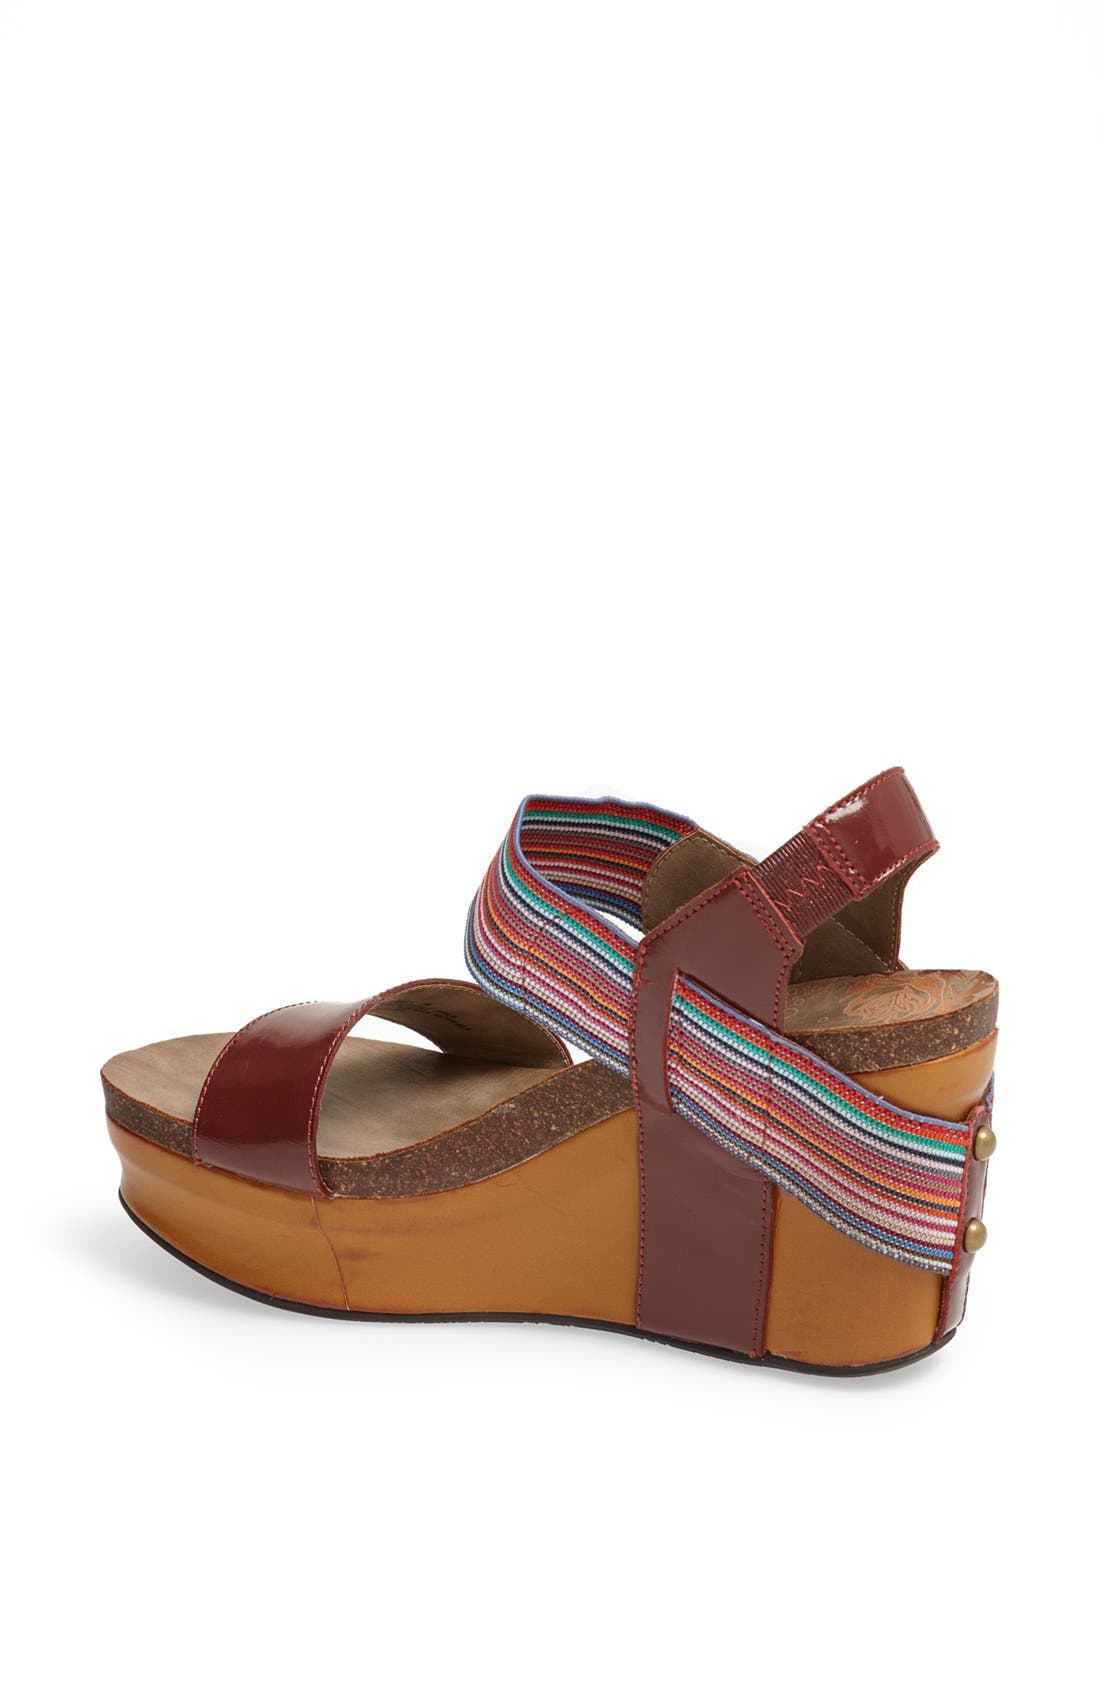 'Bushnell' Wedge Sandal,                             Alternate thumbnail 51, color,